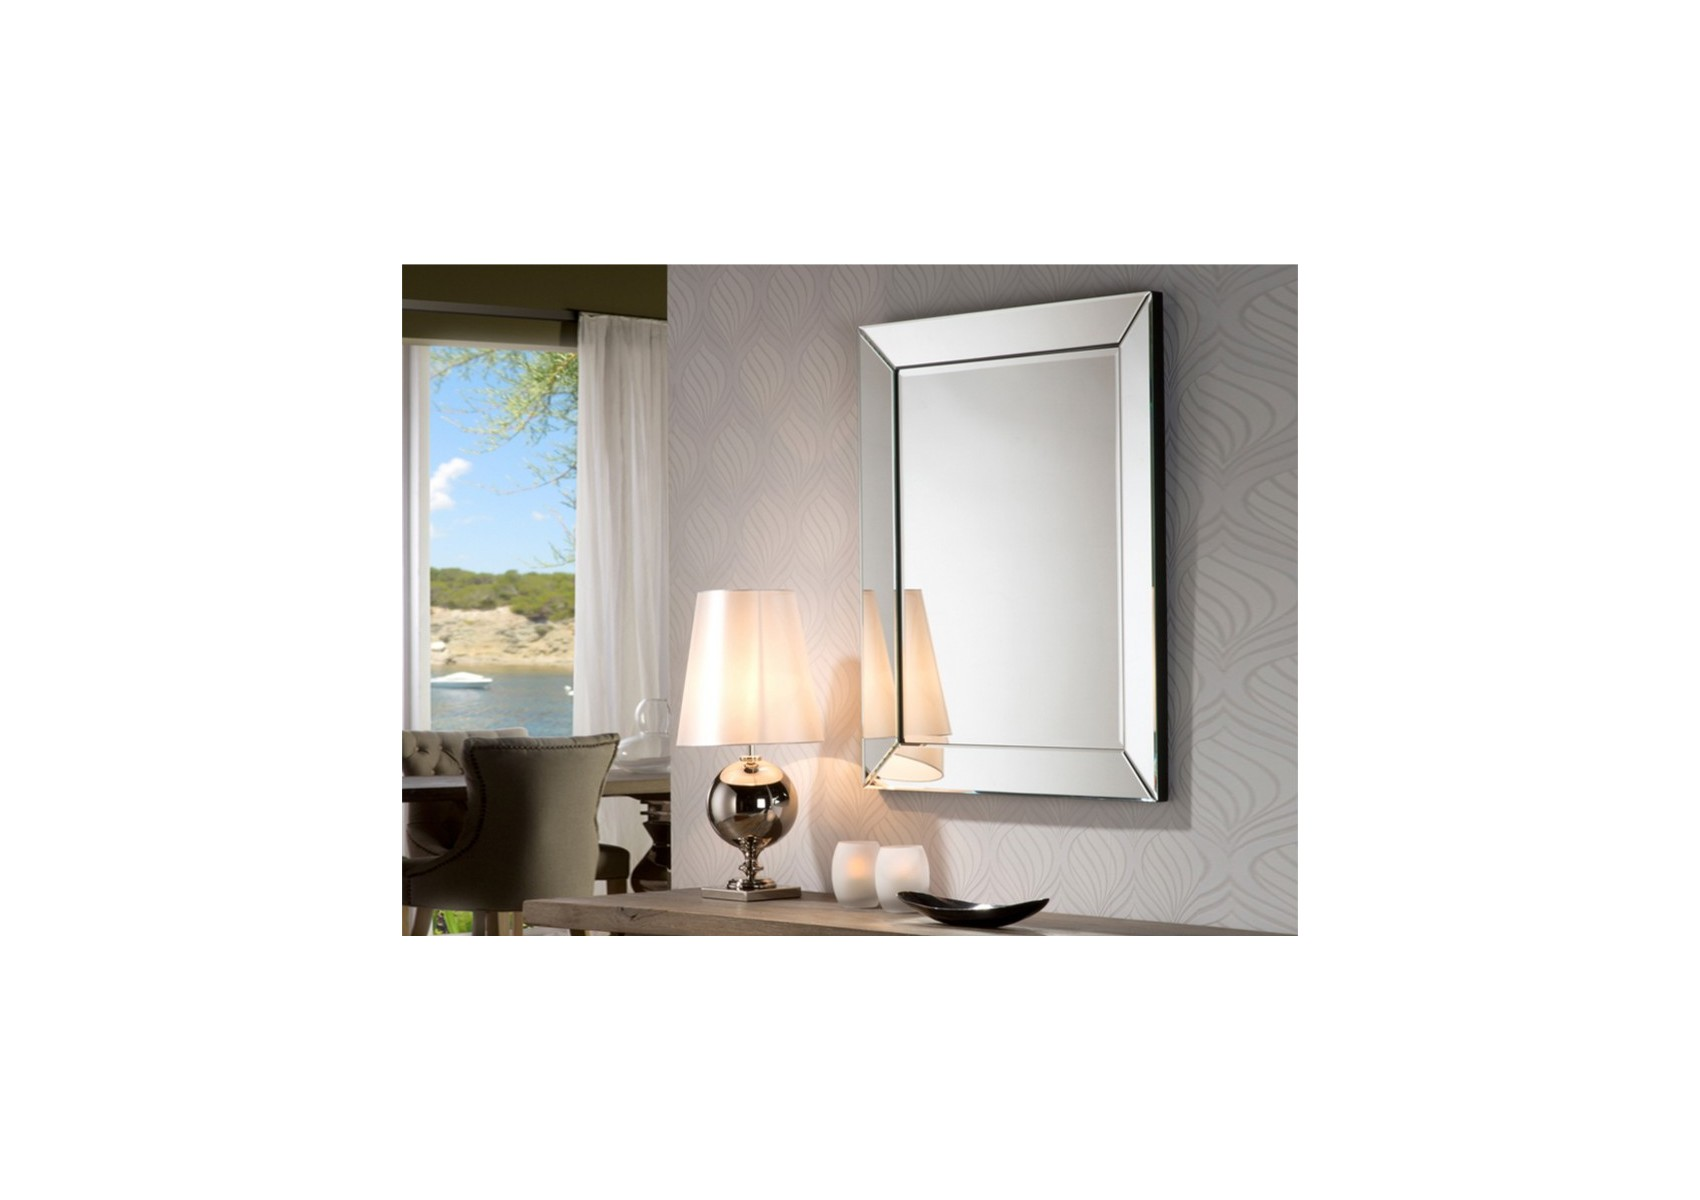 Miroir original design roma petit deco schuller for Miroir original